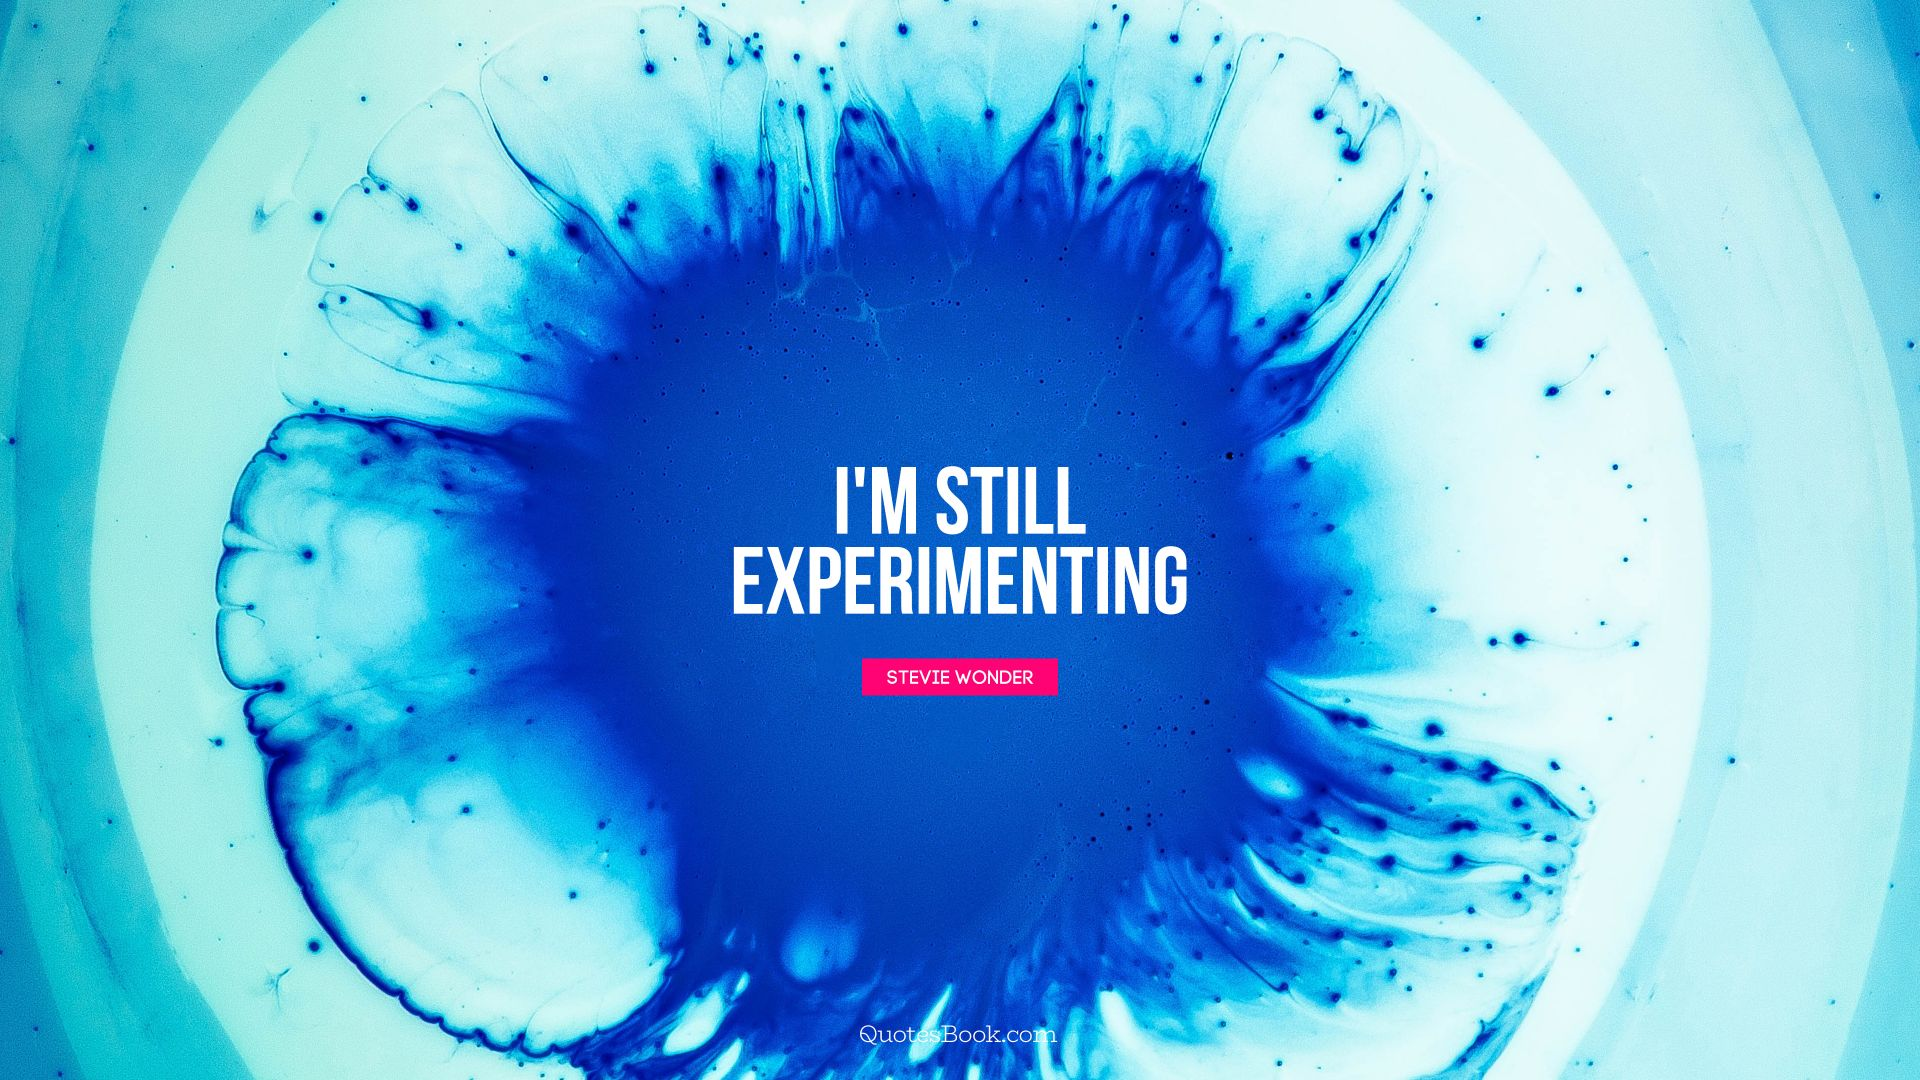 I'm still experimenting. - Quote by Stevie Wonder